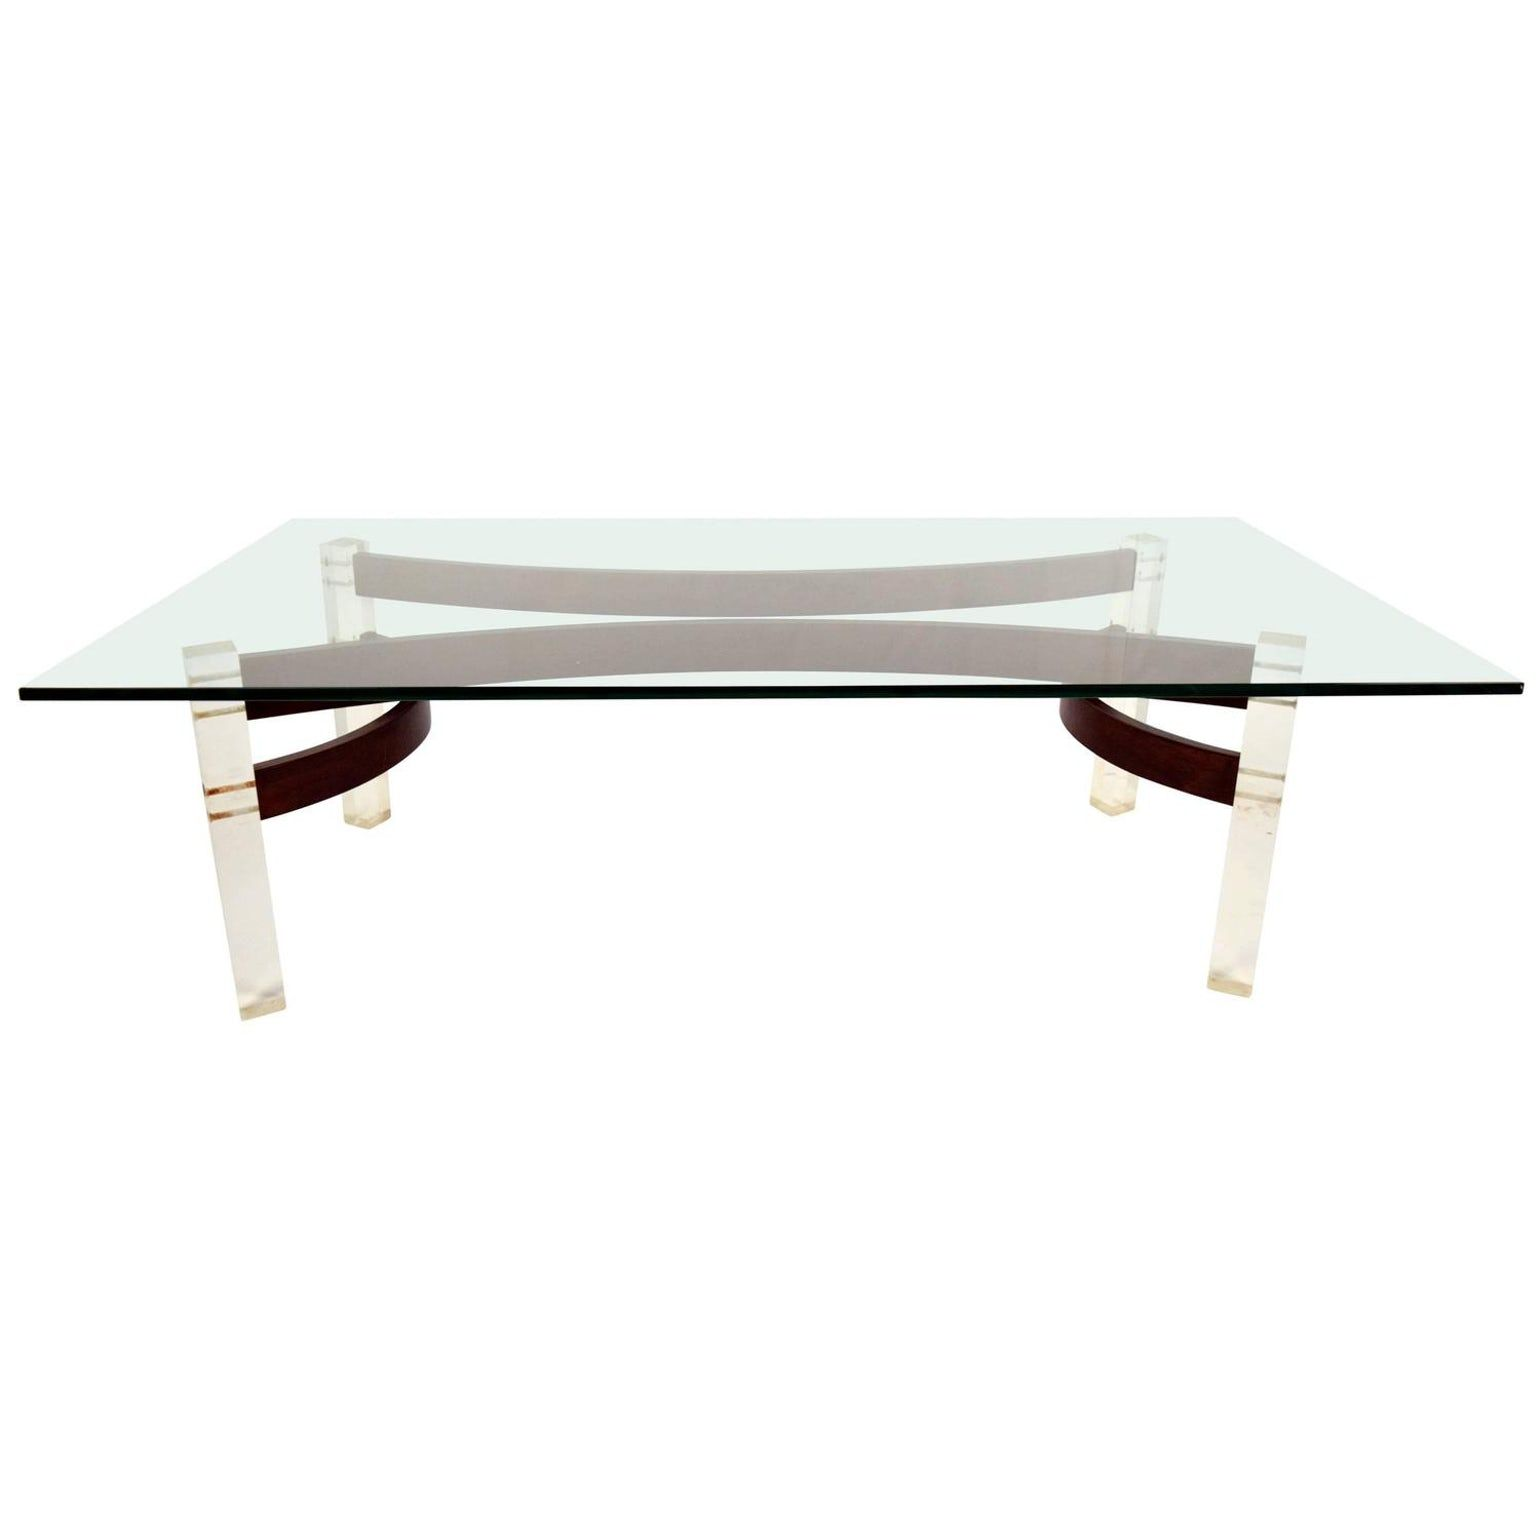 Mid Century Glass Top Coffee Table With Lucite Legs Midcentury Modern Modern Scandin Mid Century Modern Coffee Table Mid Century Glass Glass Top Coffee Table [ 1540 x 1540 Pixel ]